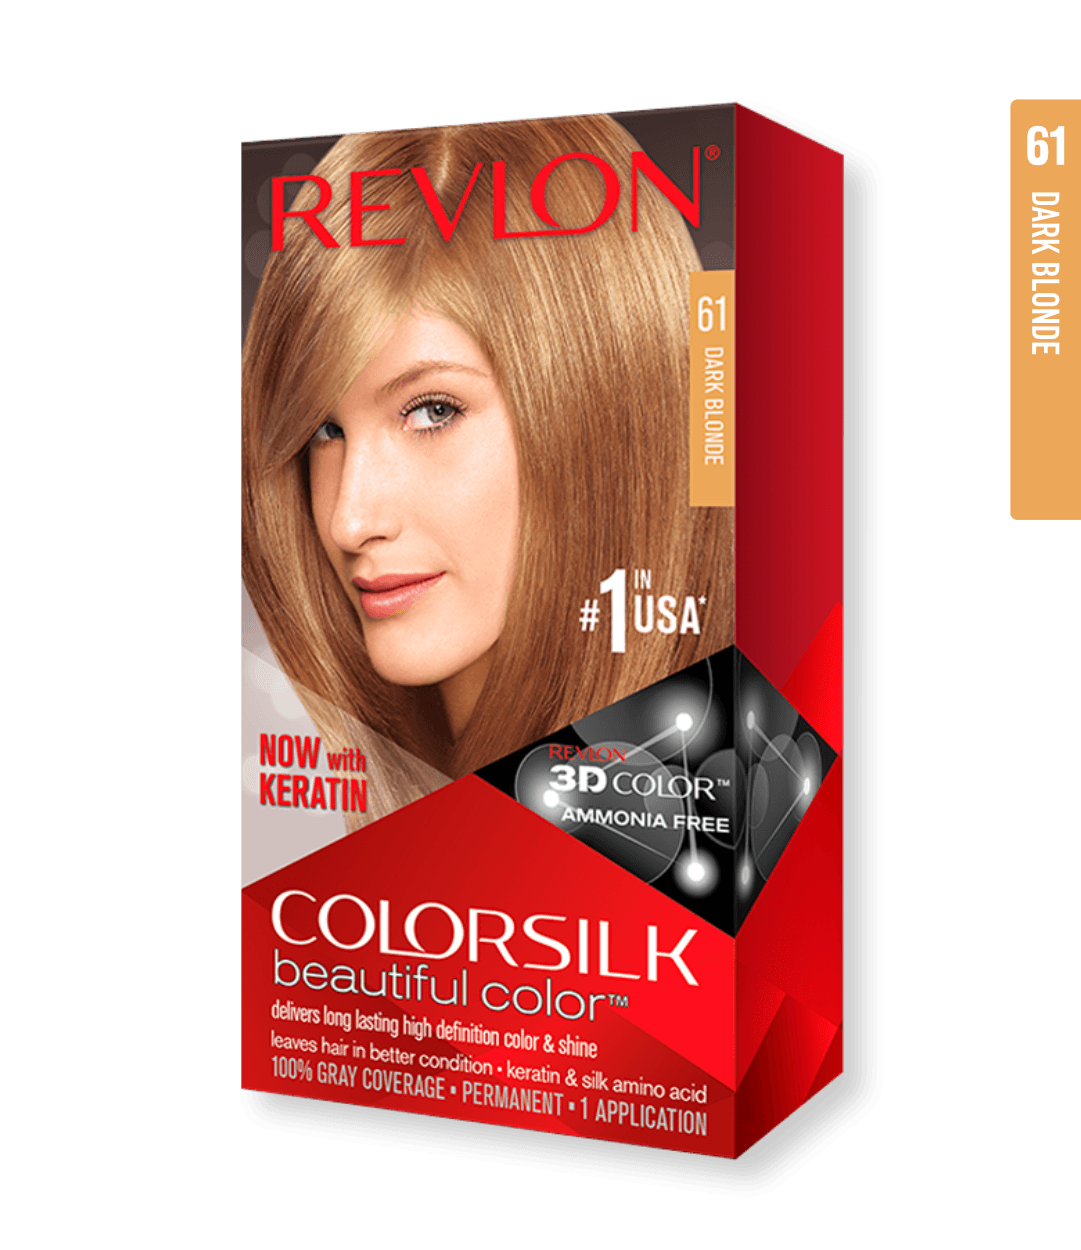 Revlon ColorSilk 61 Dark Blonde | Duo Cosmetics